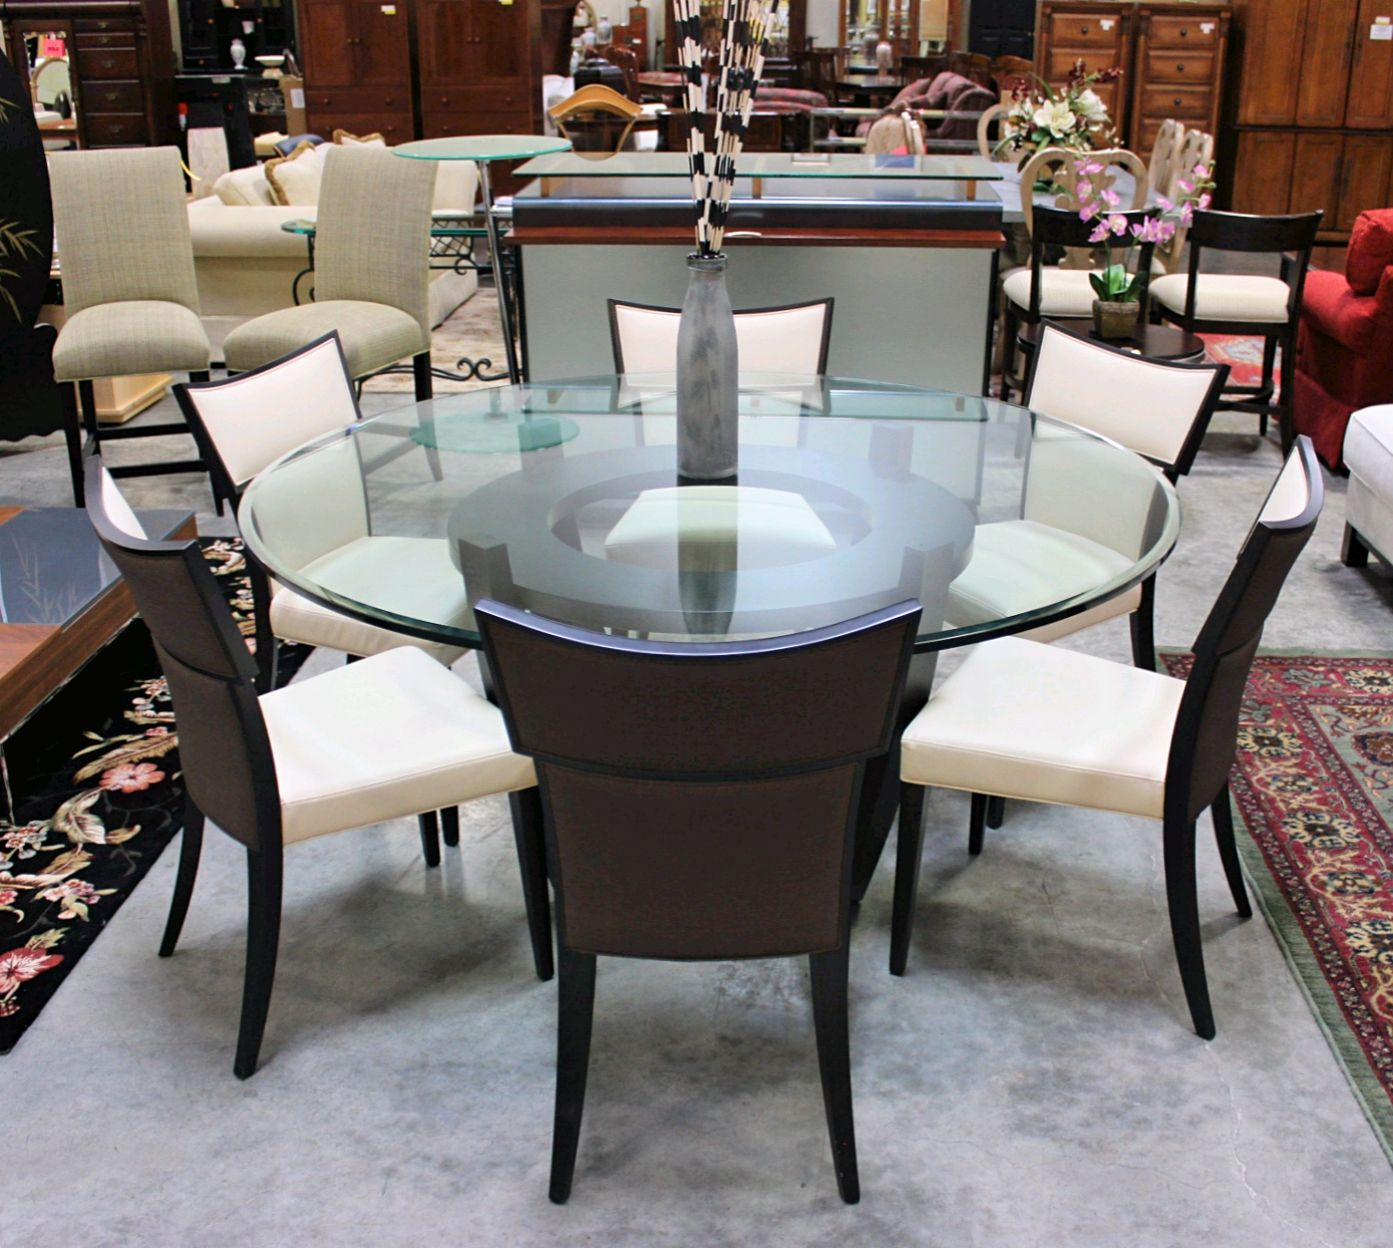 Udia cream leather chairs furniture pinterest glass table